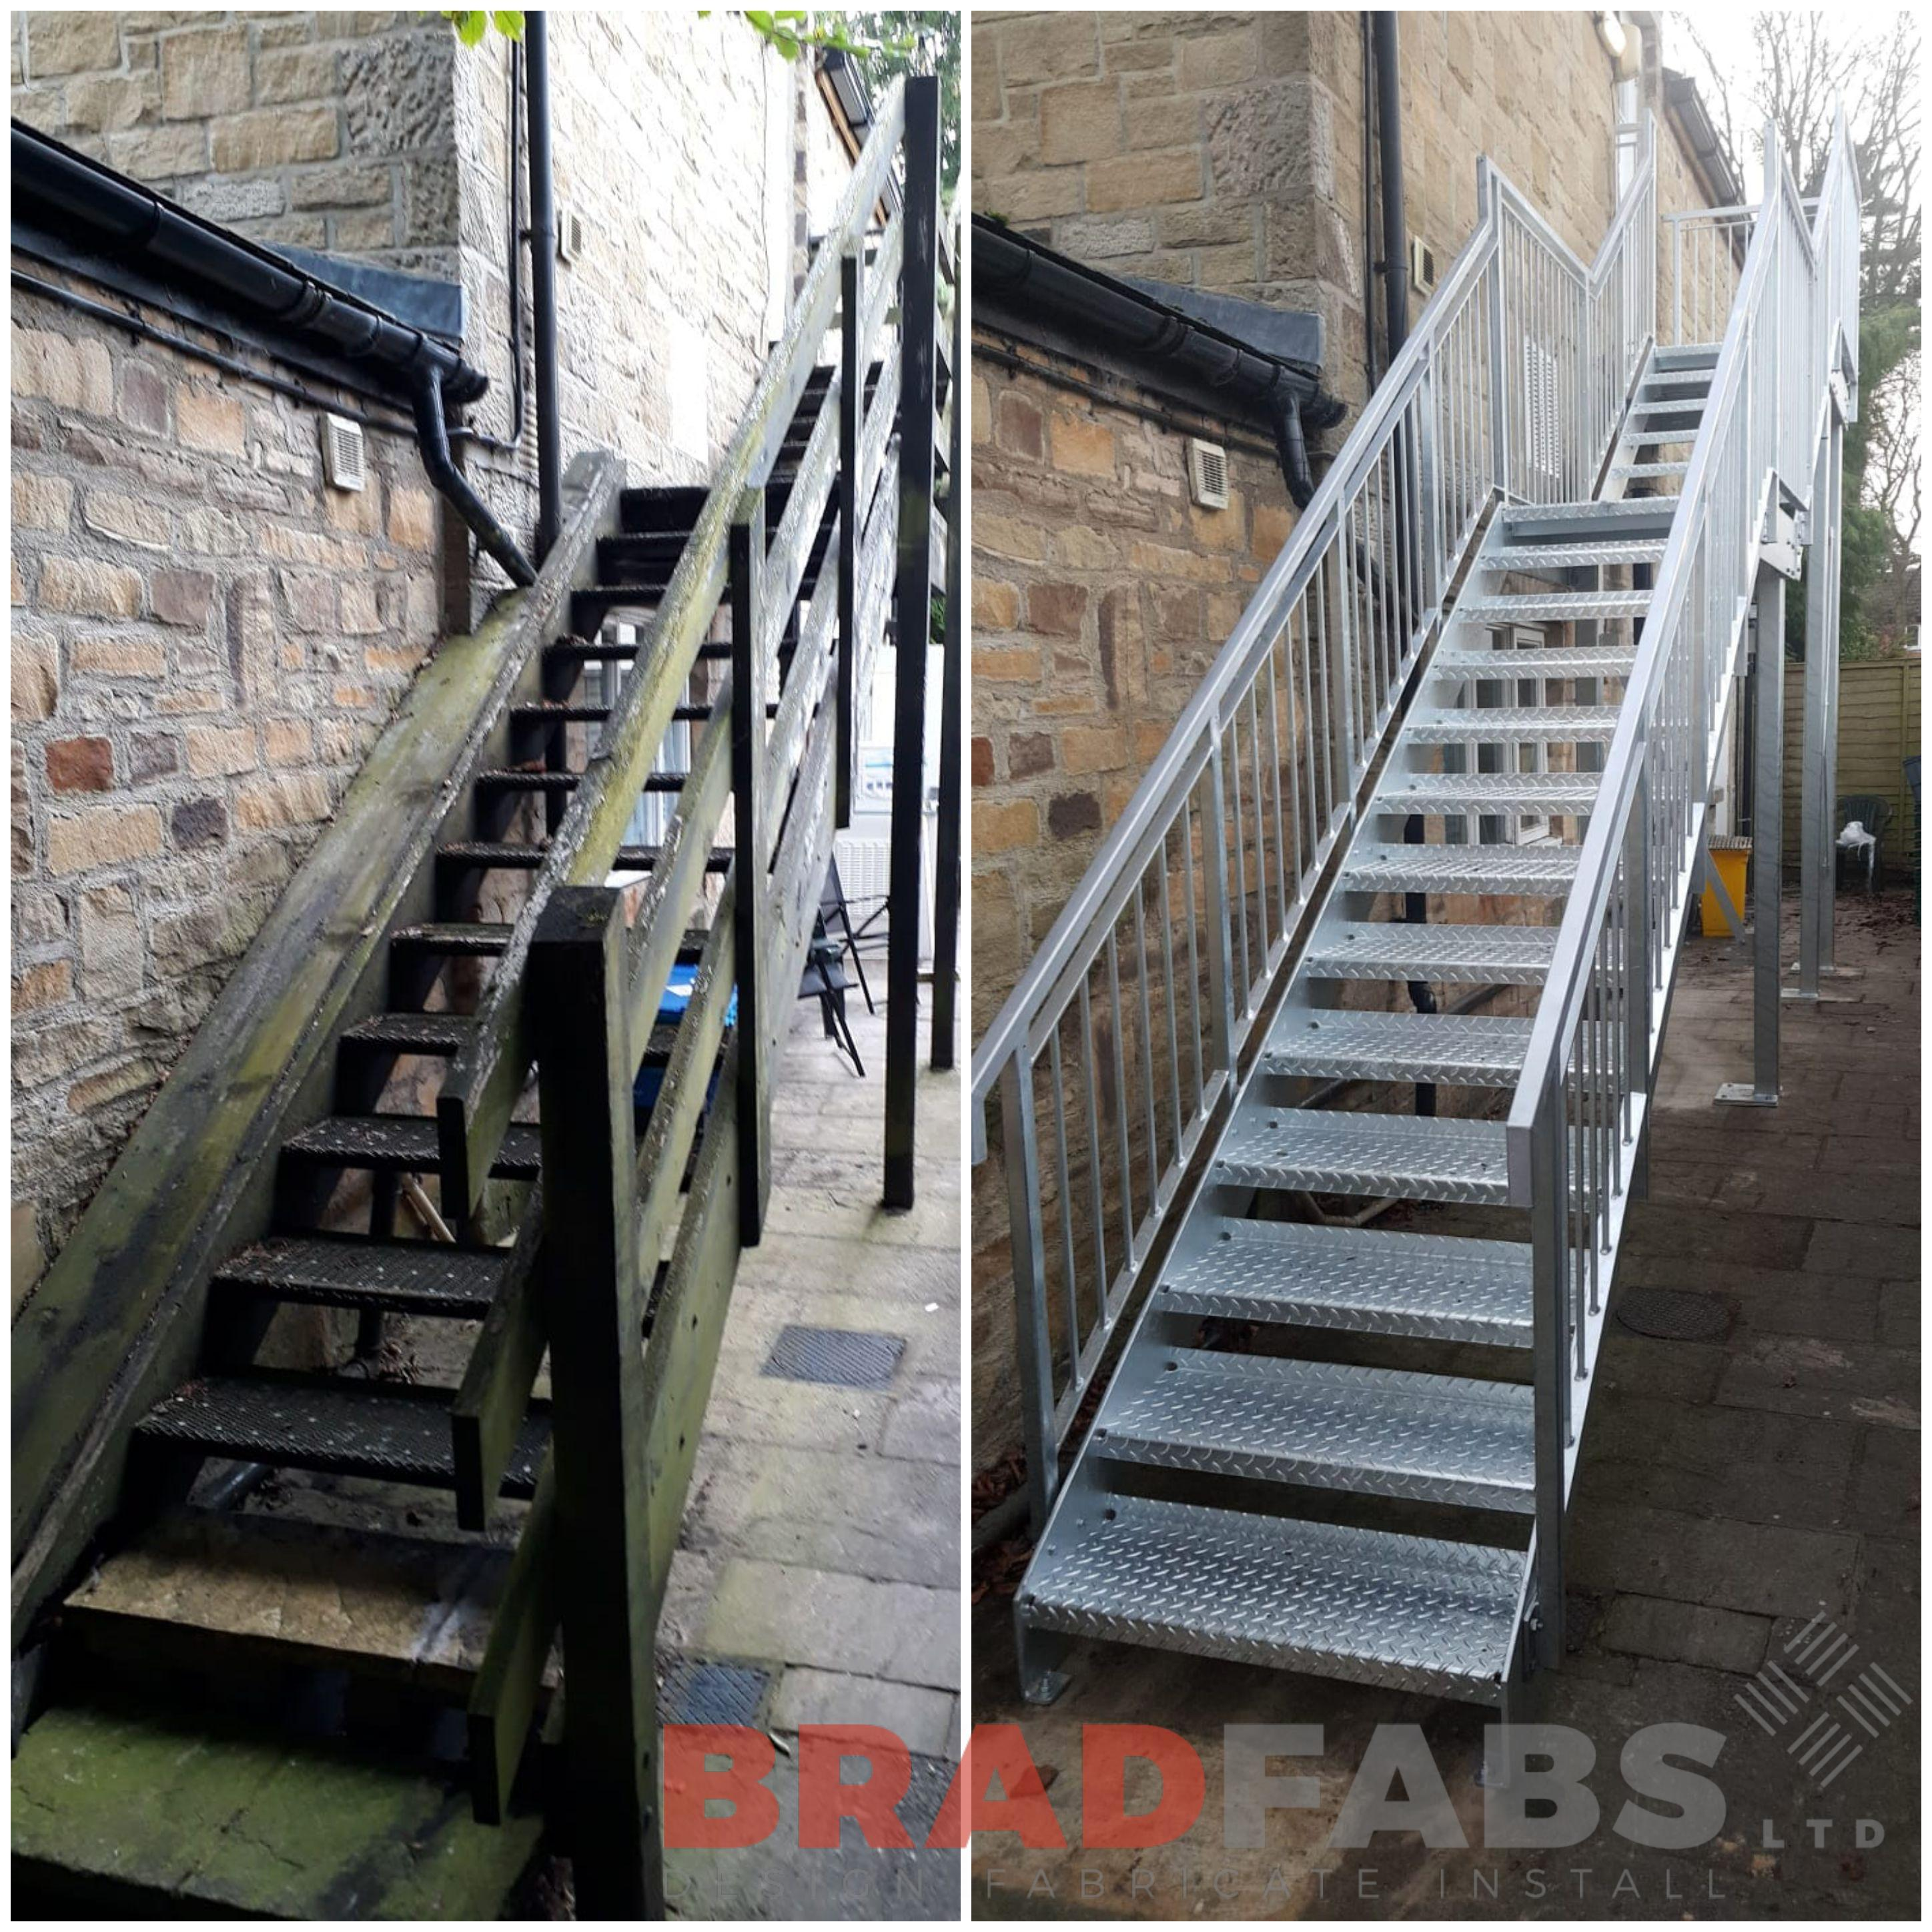 Replacement of an old rotten wooden fire escape staircase to a bespoke metal, galvanised staircase designed, manufactured and installed by Bradfabs, UK based fabrication company